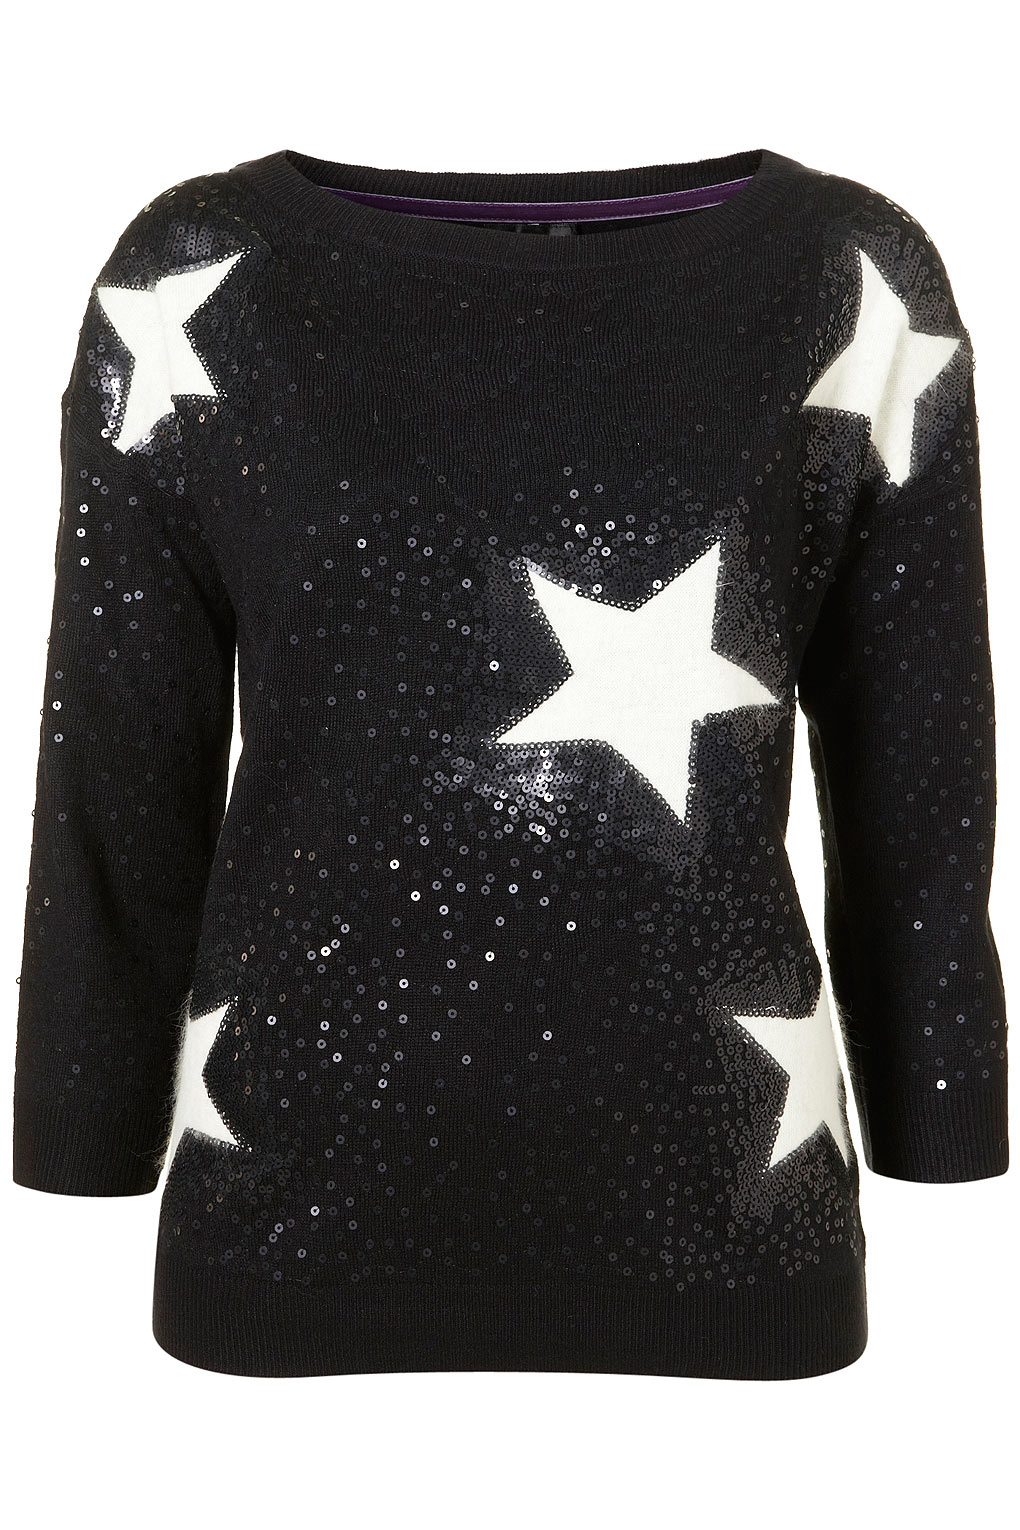 The Style Anchor Starry Starry Night